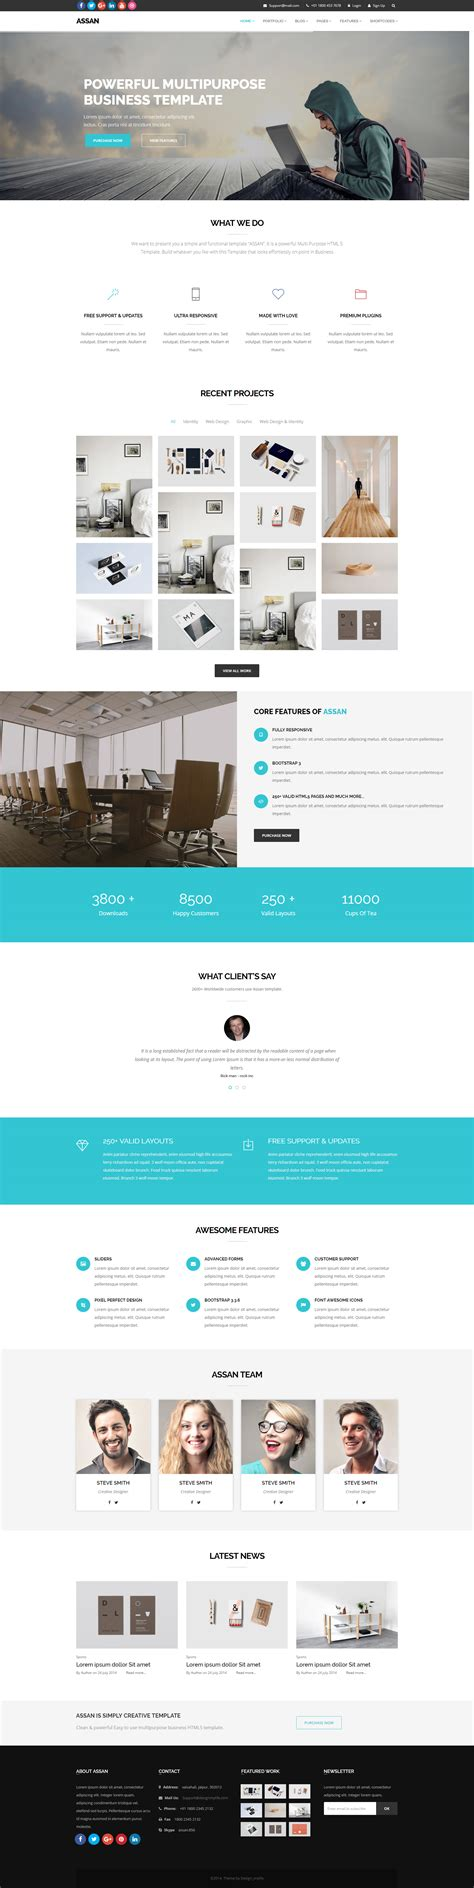 bootstrap themes top top 10 best bootstrap themes for 2017 wdrfree post